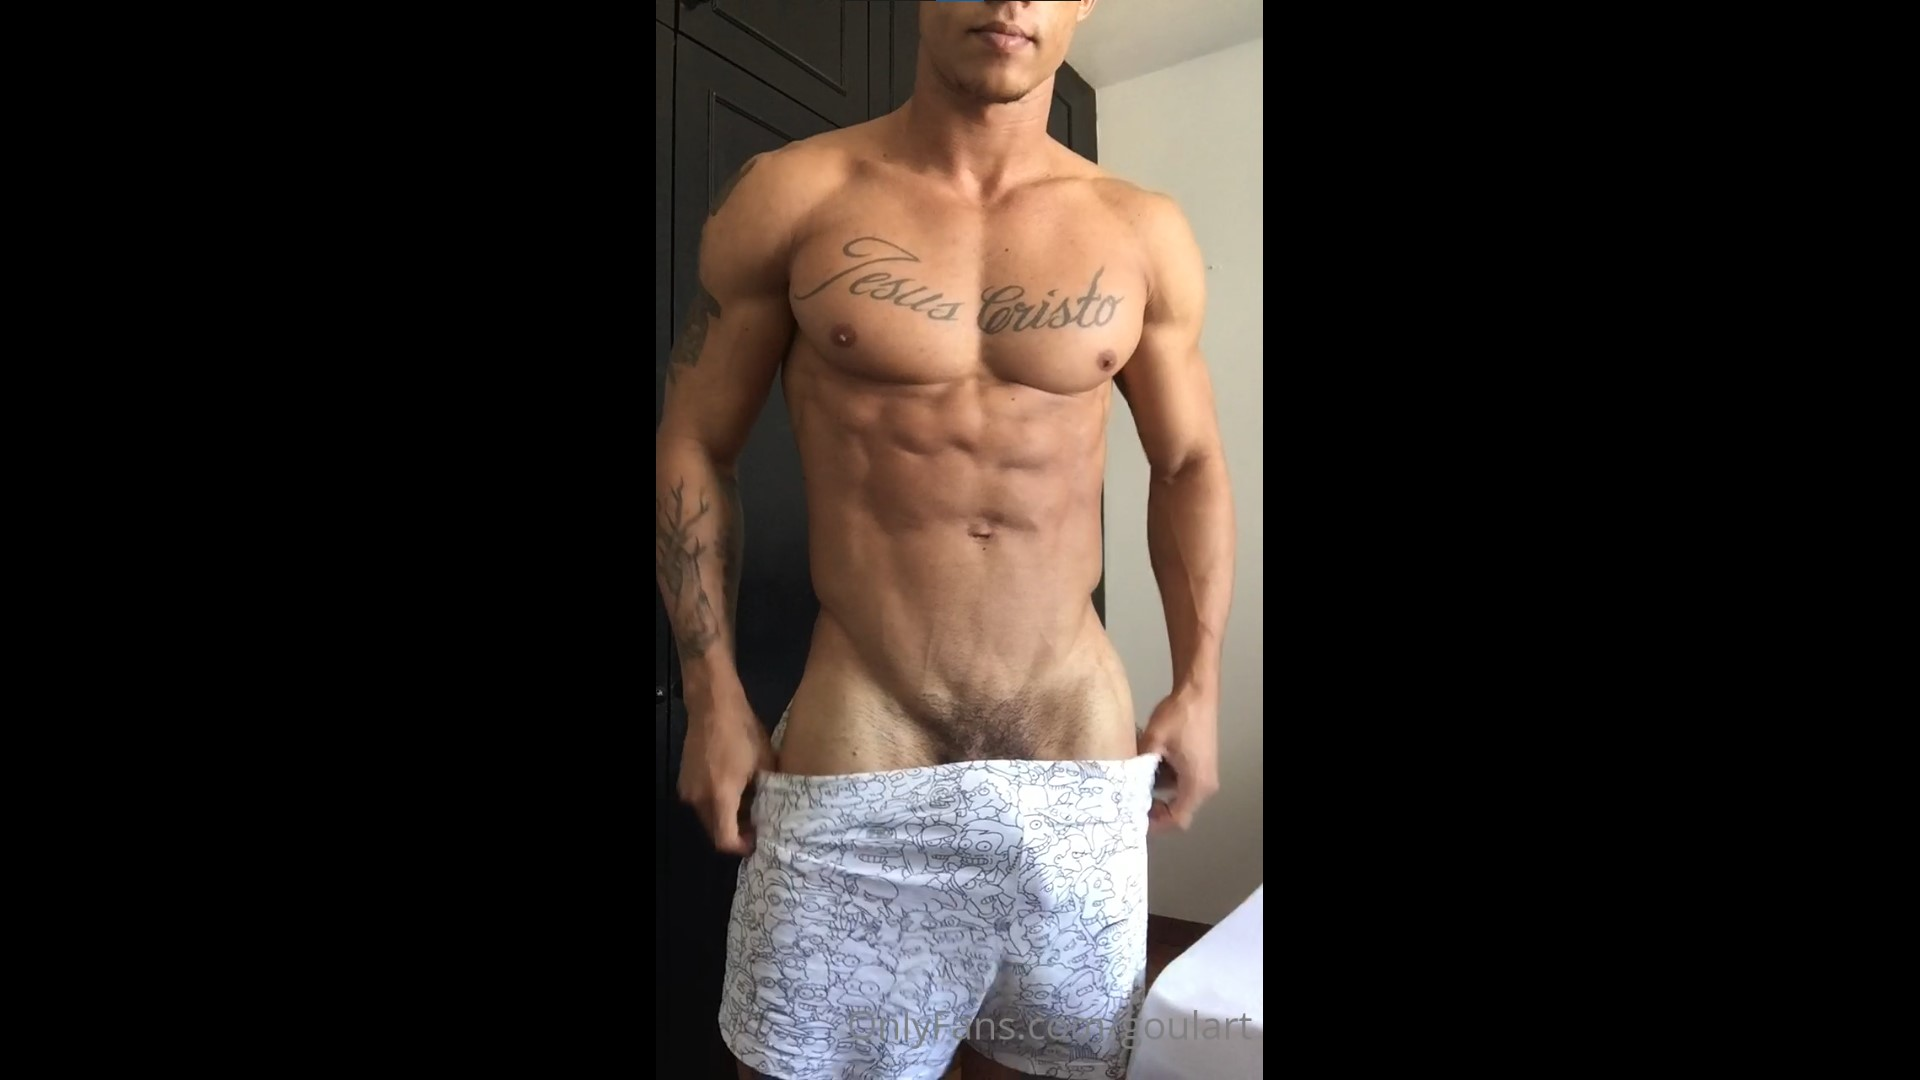 Jerking my cock and showing off my ass - Goulart